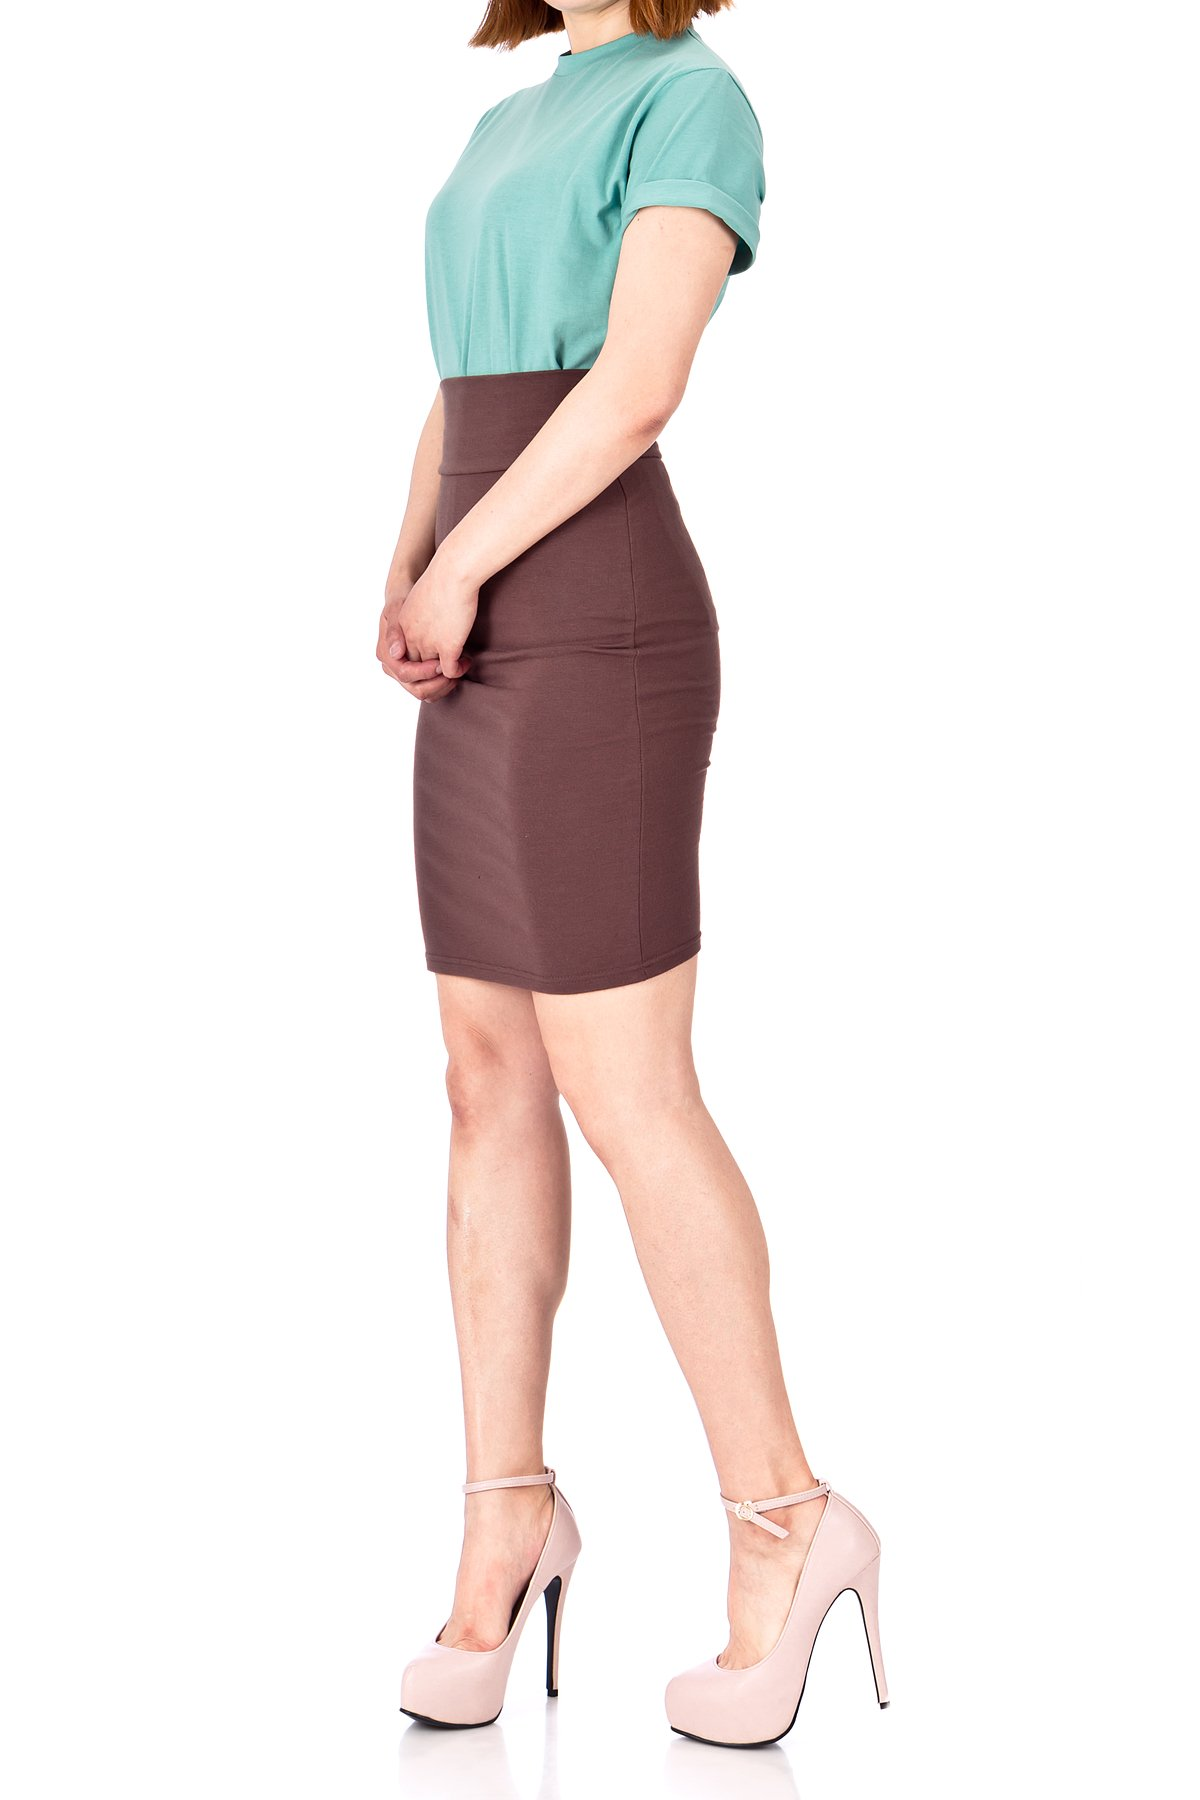 Every Occasion Stretch Pull on Wide High Waist Bodycon Pencil Knee Length Midi Skirt Brown 04 1